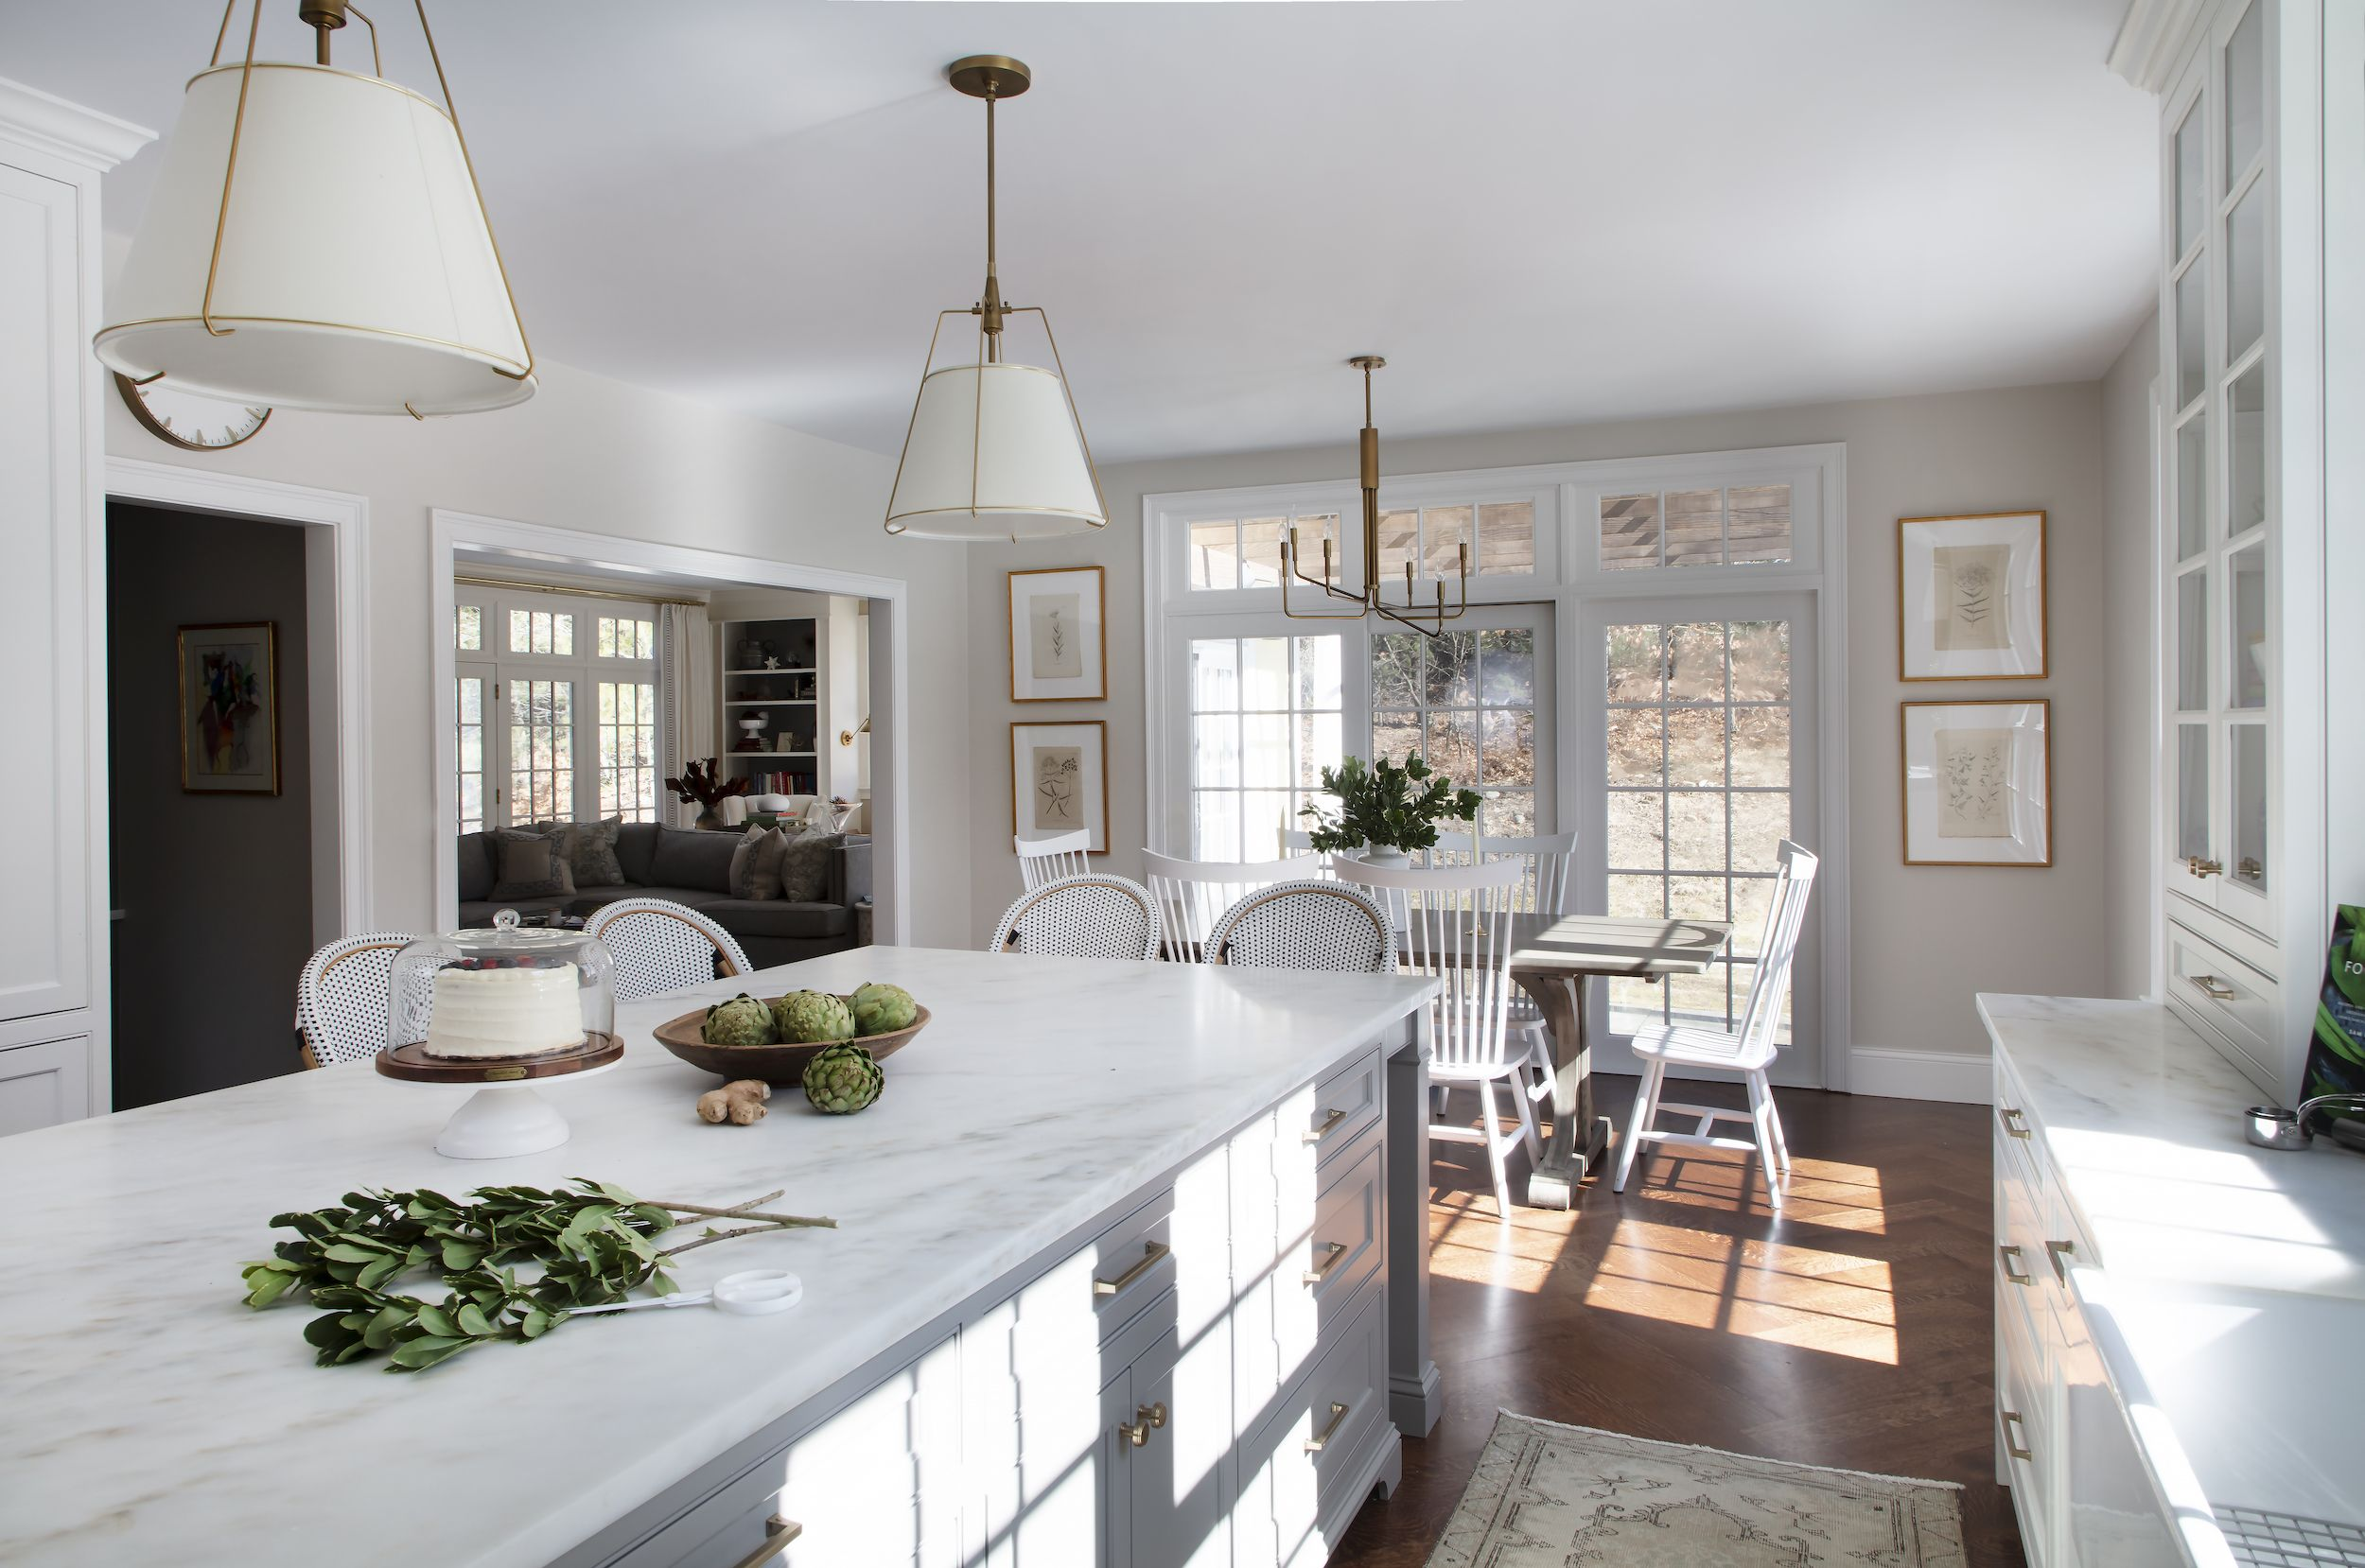 This Dreamy Family Kitchen Is A Storage Oasis Simple Kitchen Remodel Kitchen Remodel Kitchen Renovation